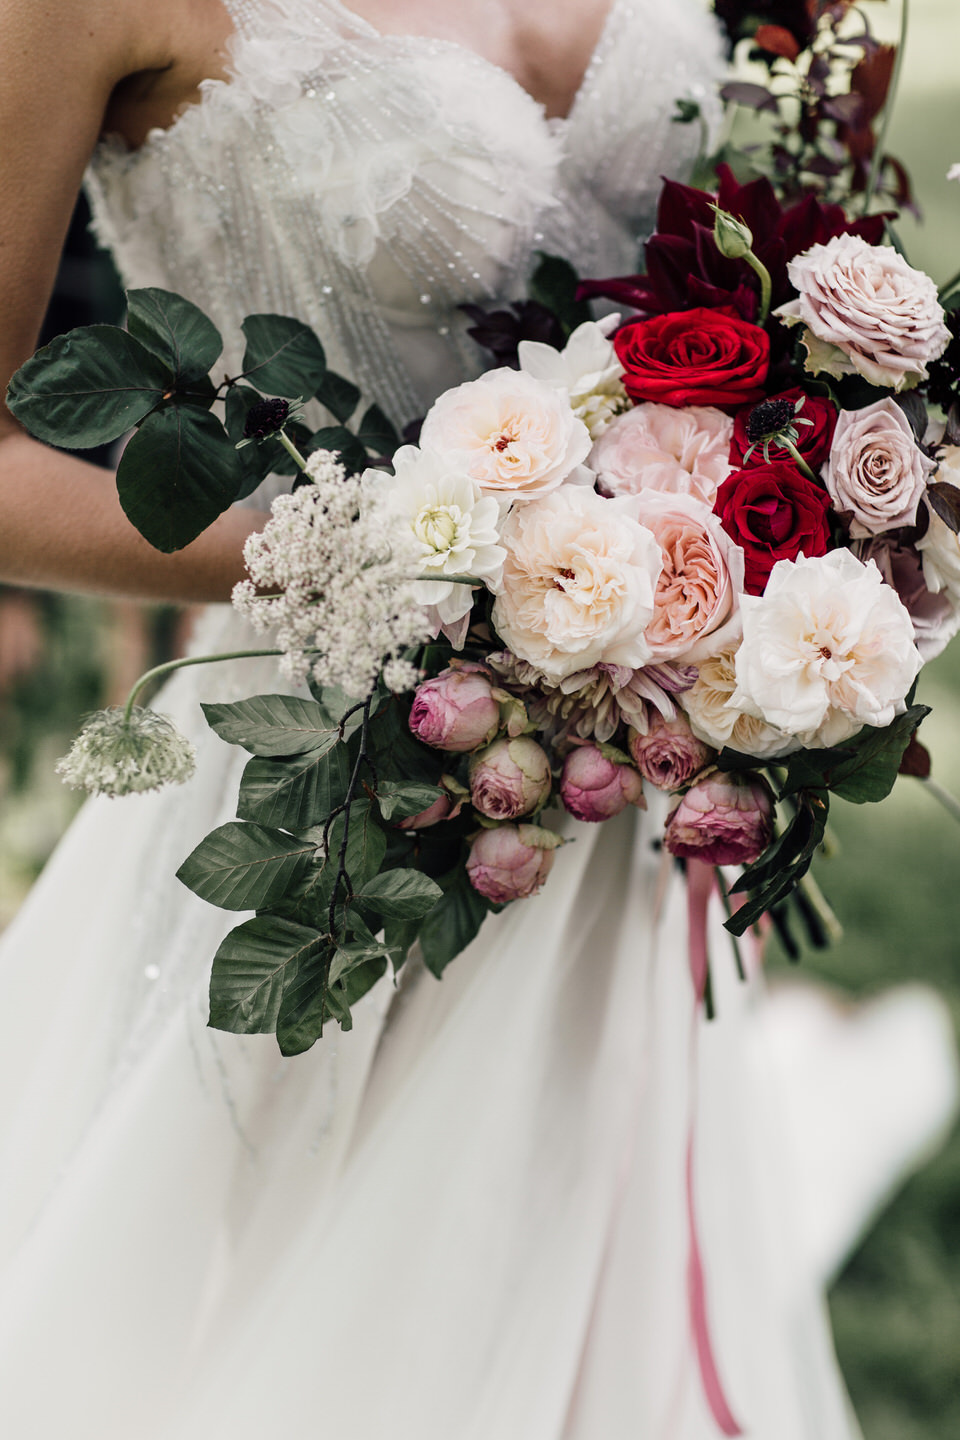 Bride holding romantic wedding bouquet made of David Austin roses and garden roses